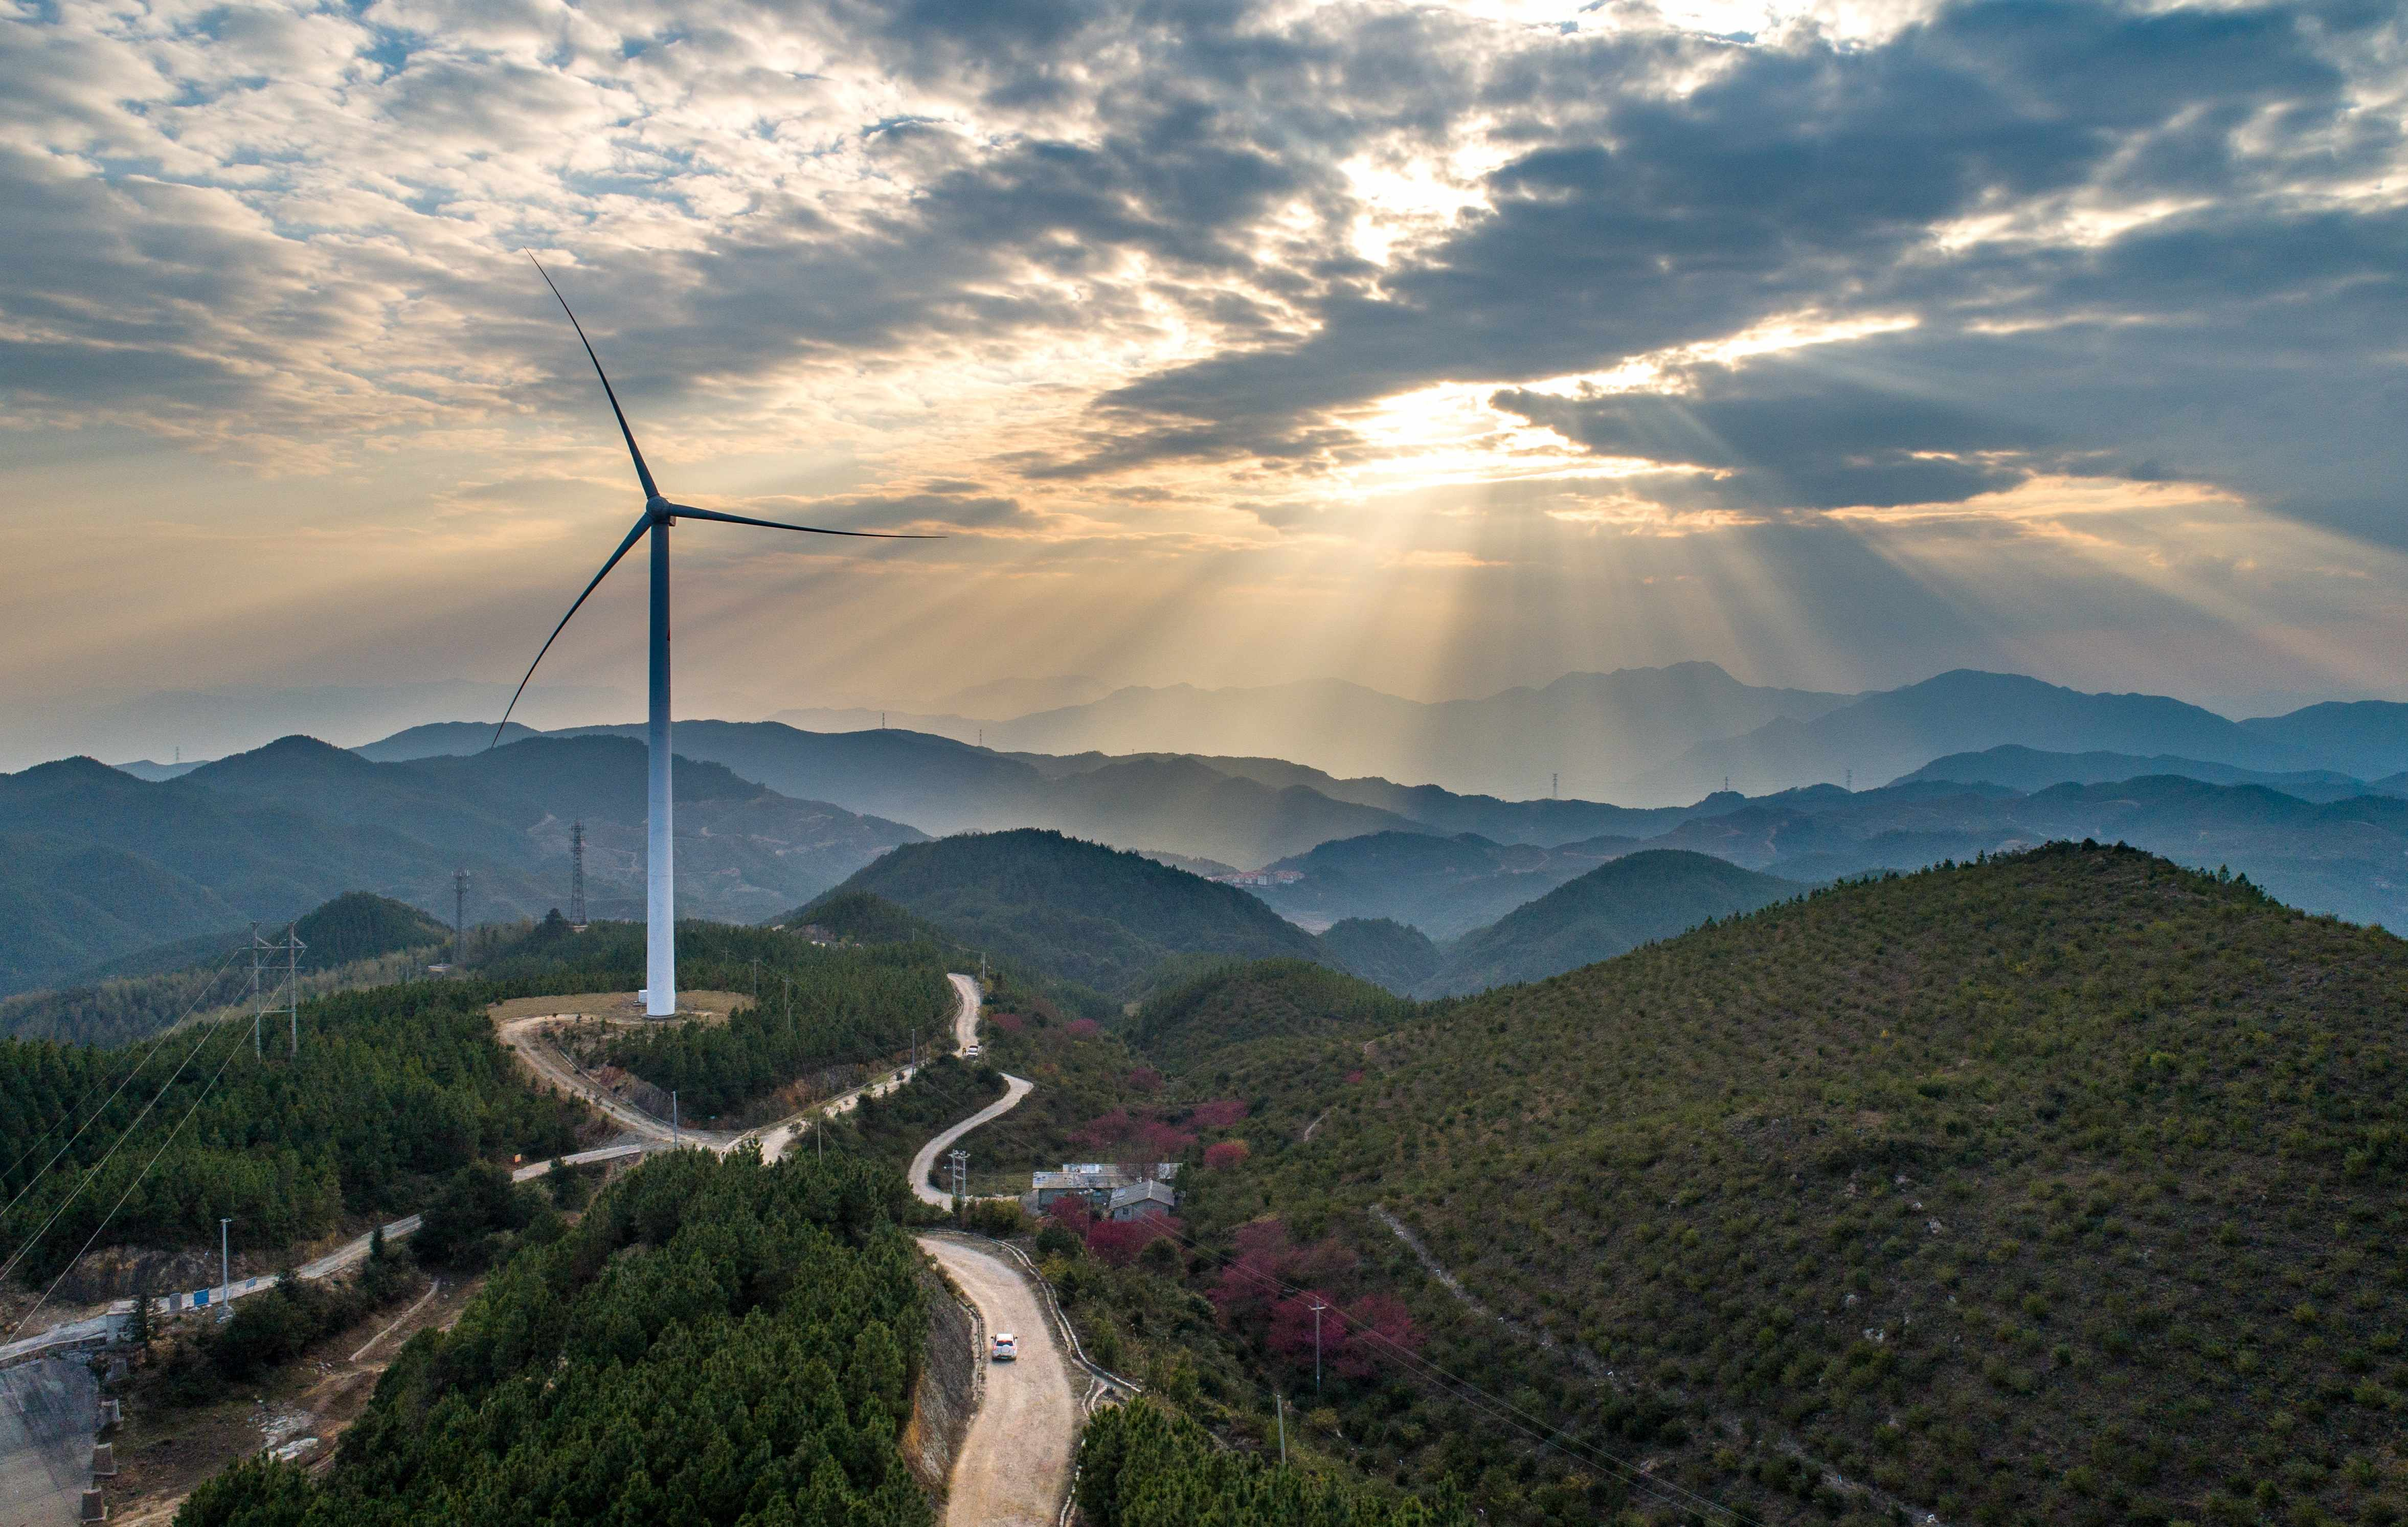 Wind power generation in the clouds